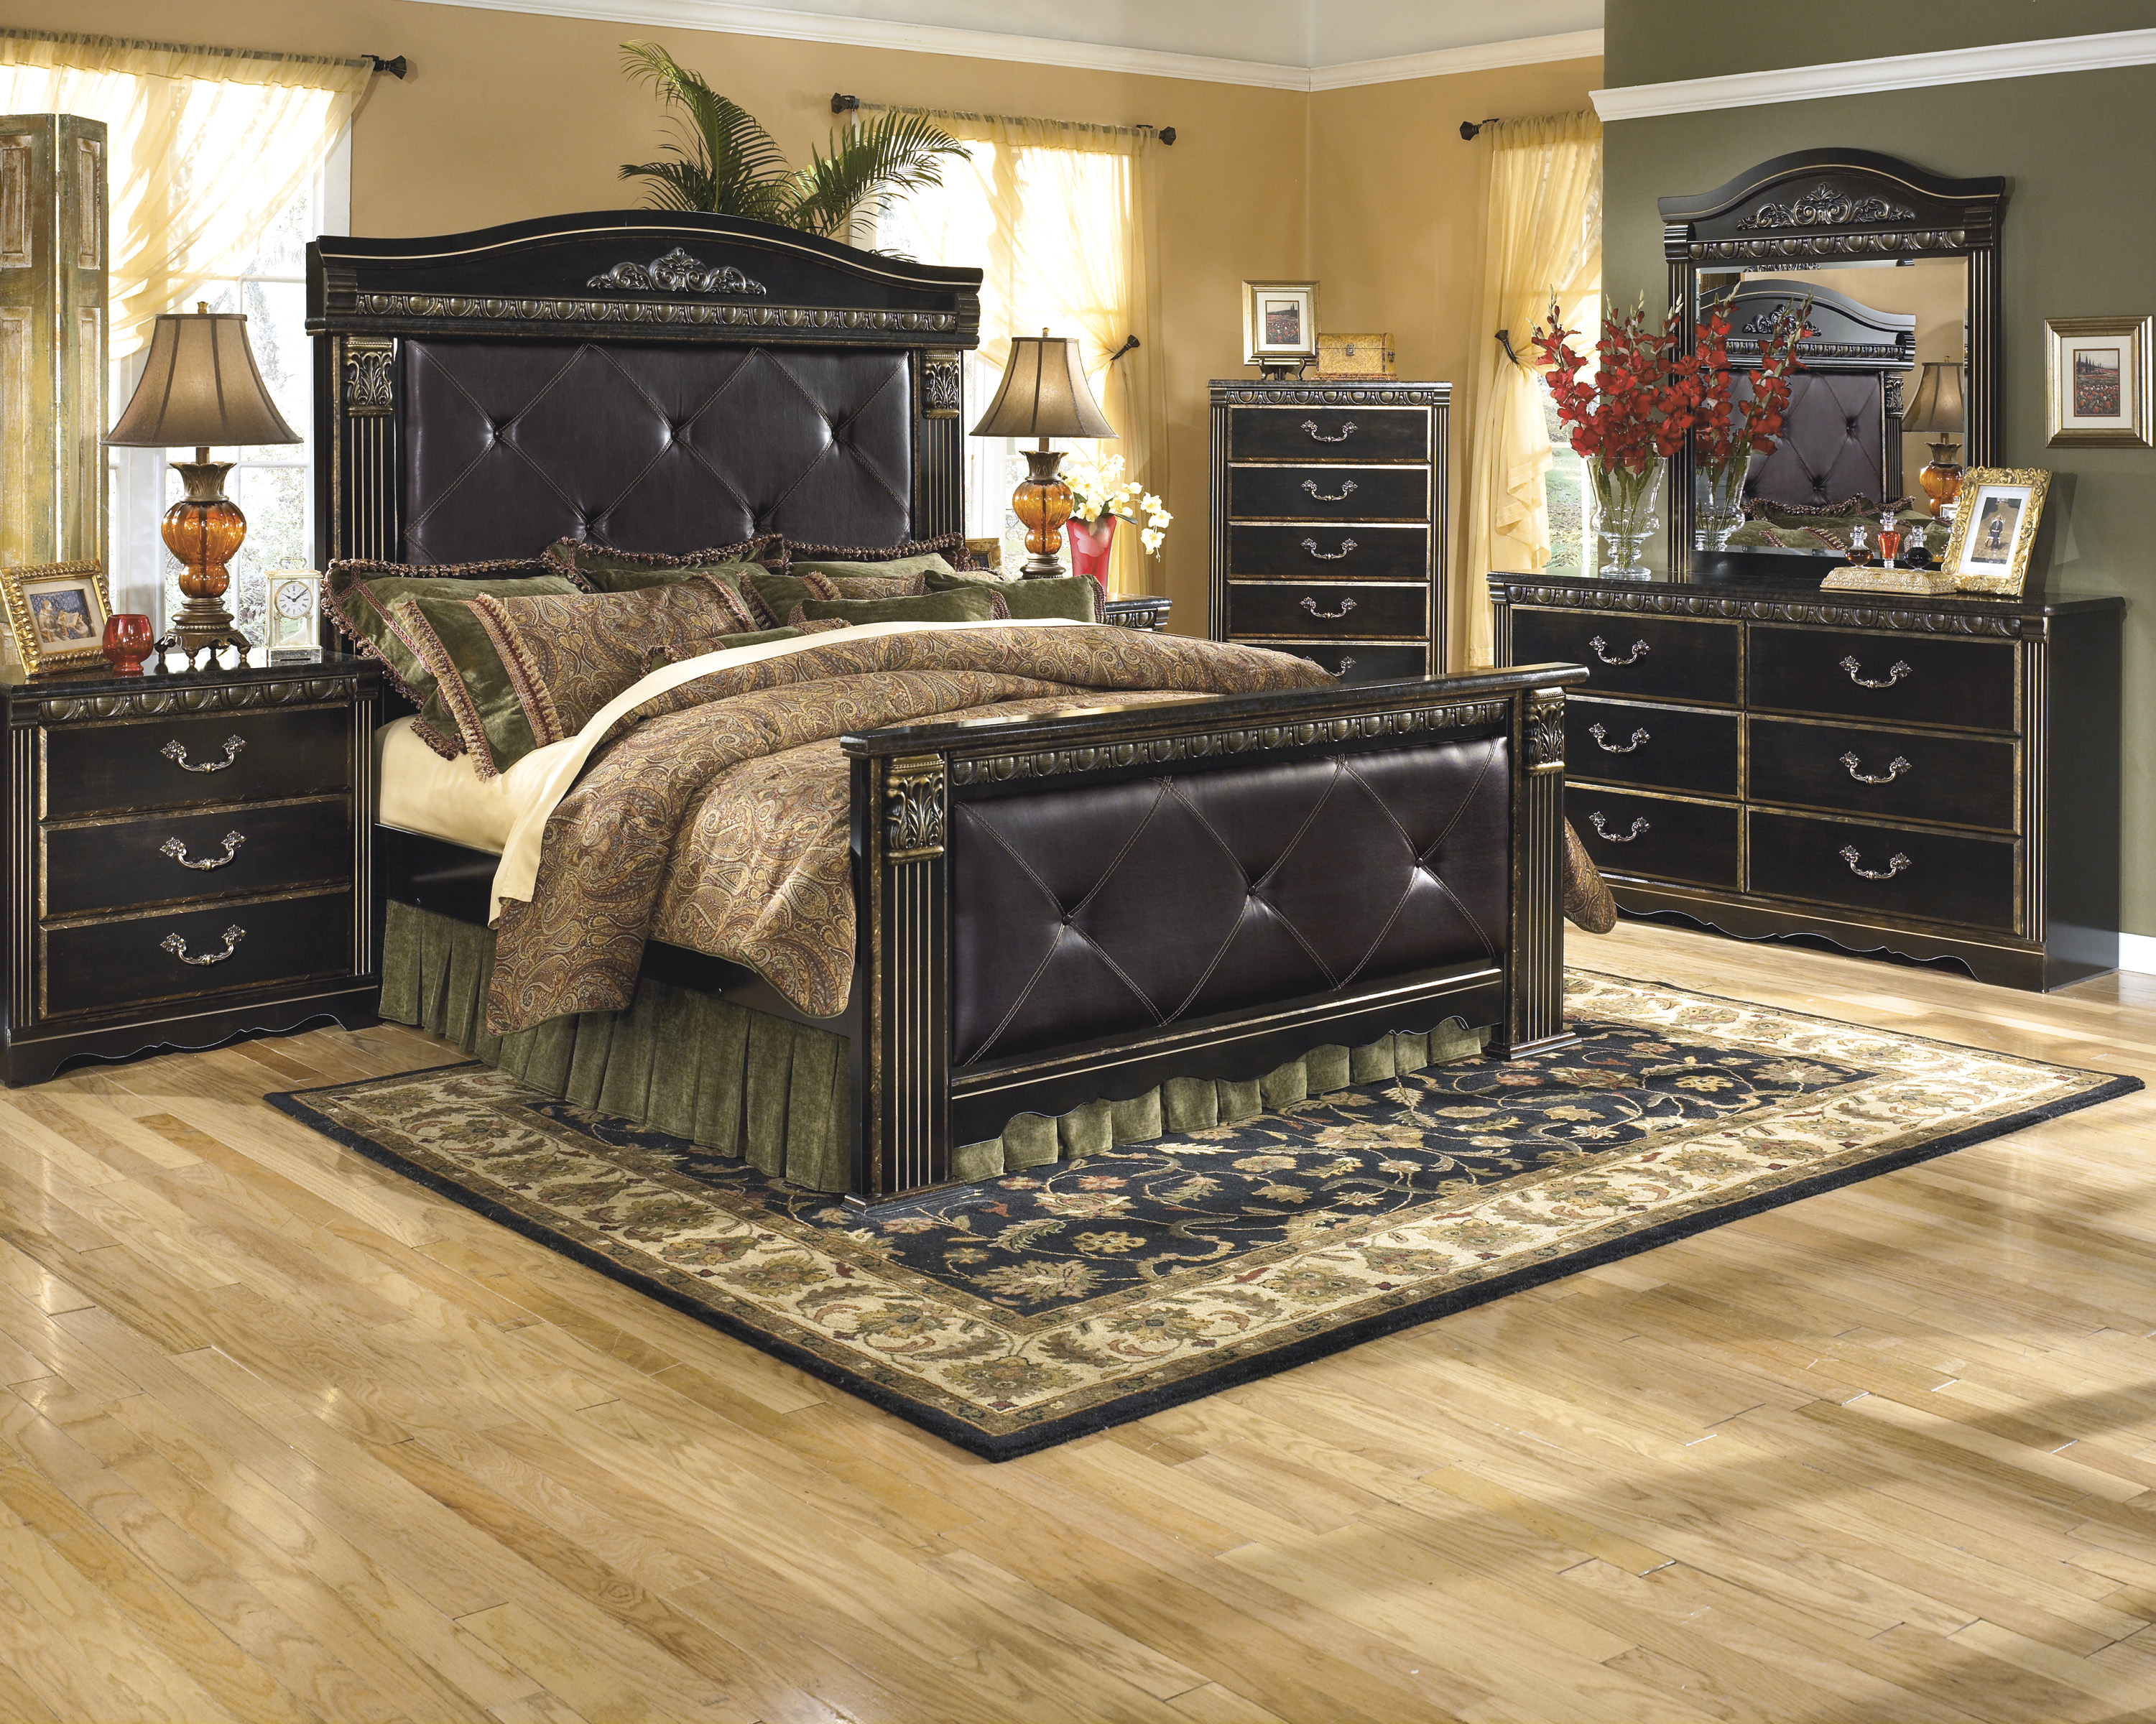 Ashley furniture bedrooms sets